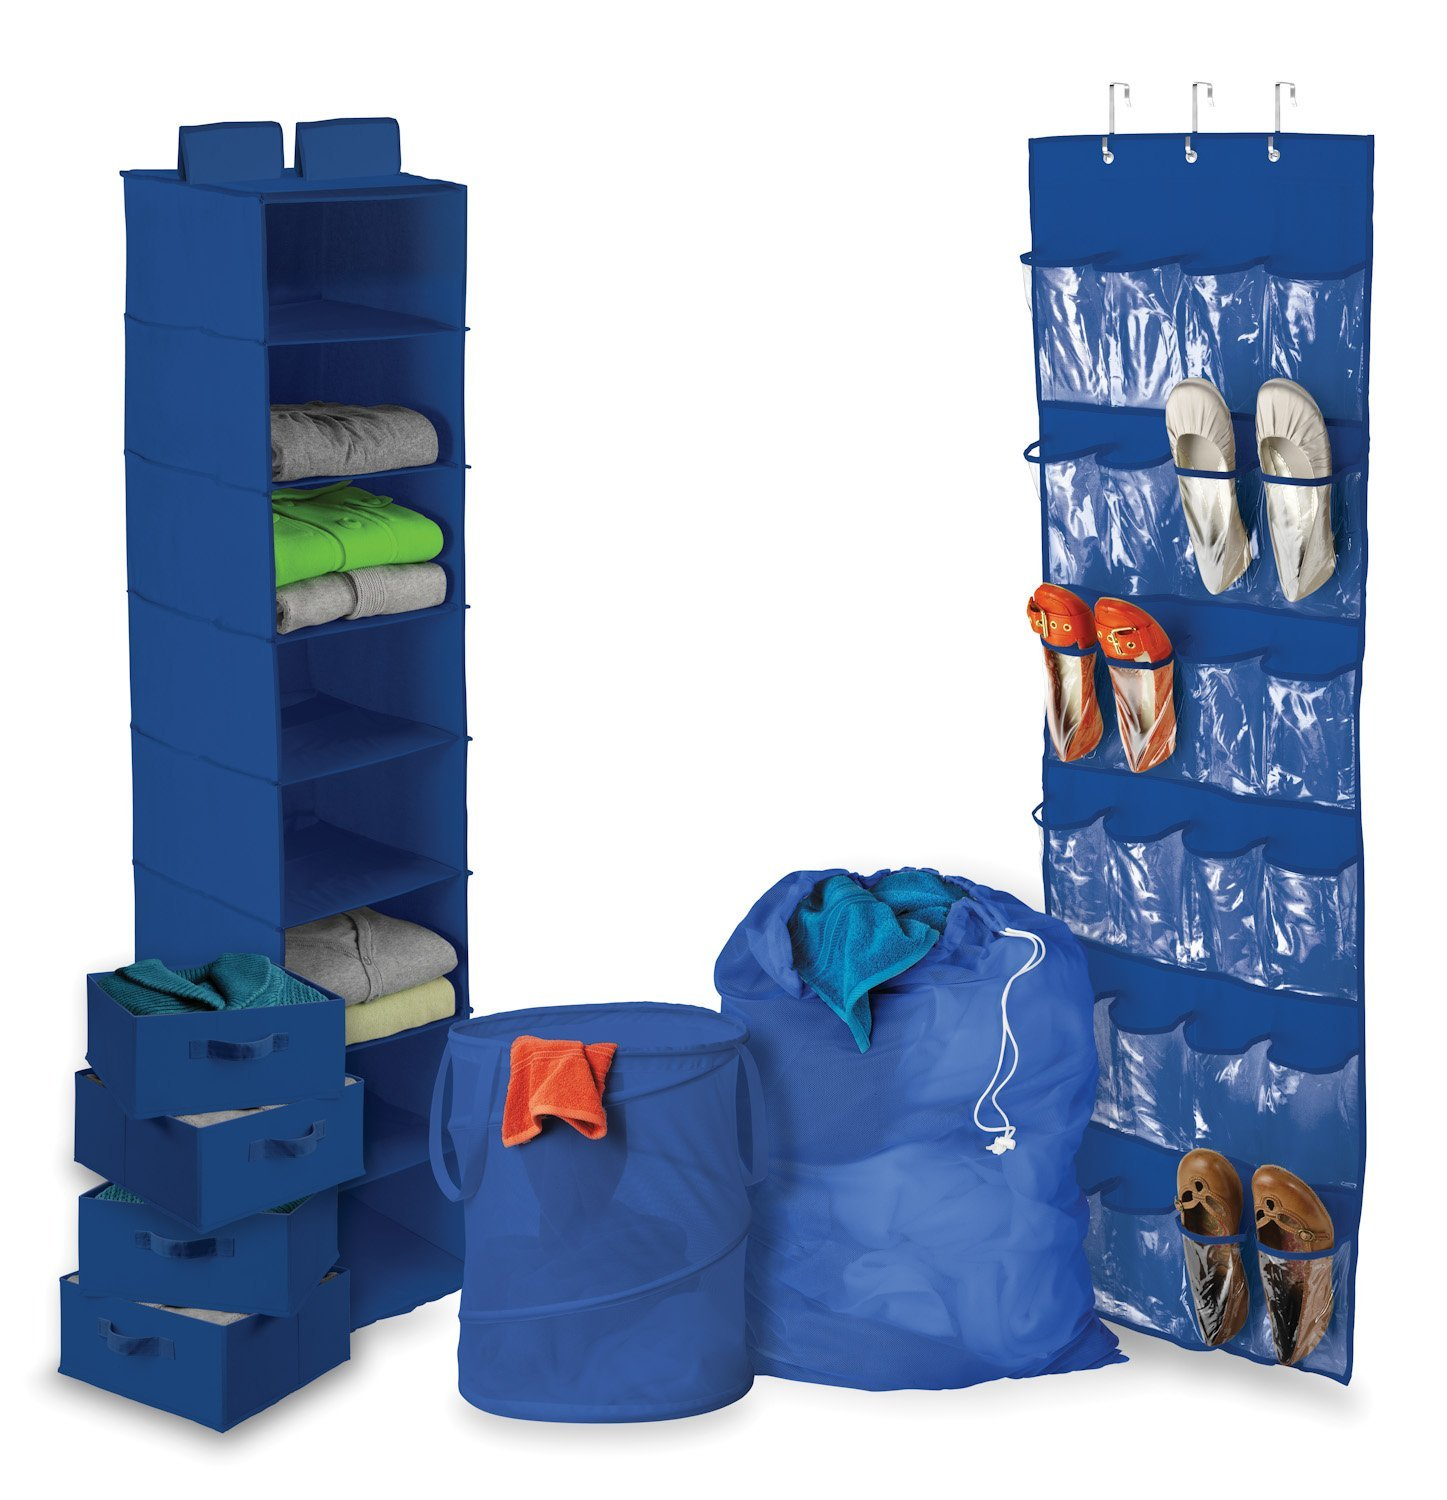 8 Piece Ultimate Dorm Organization Set by Honey-Can-Do